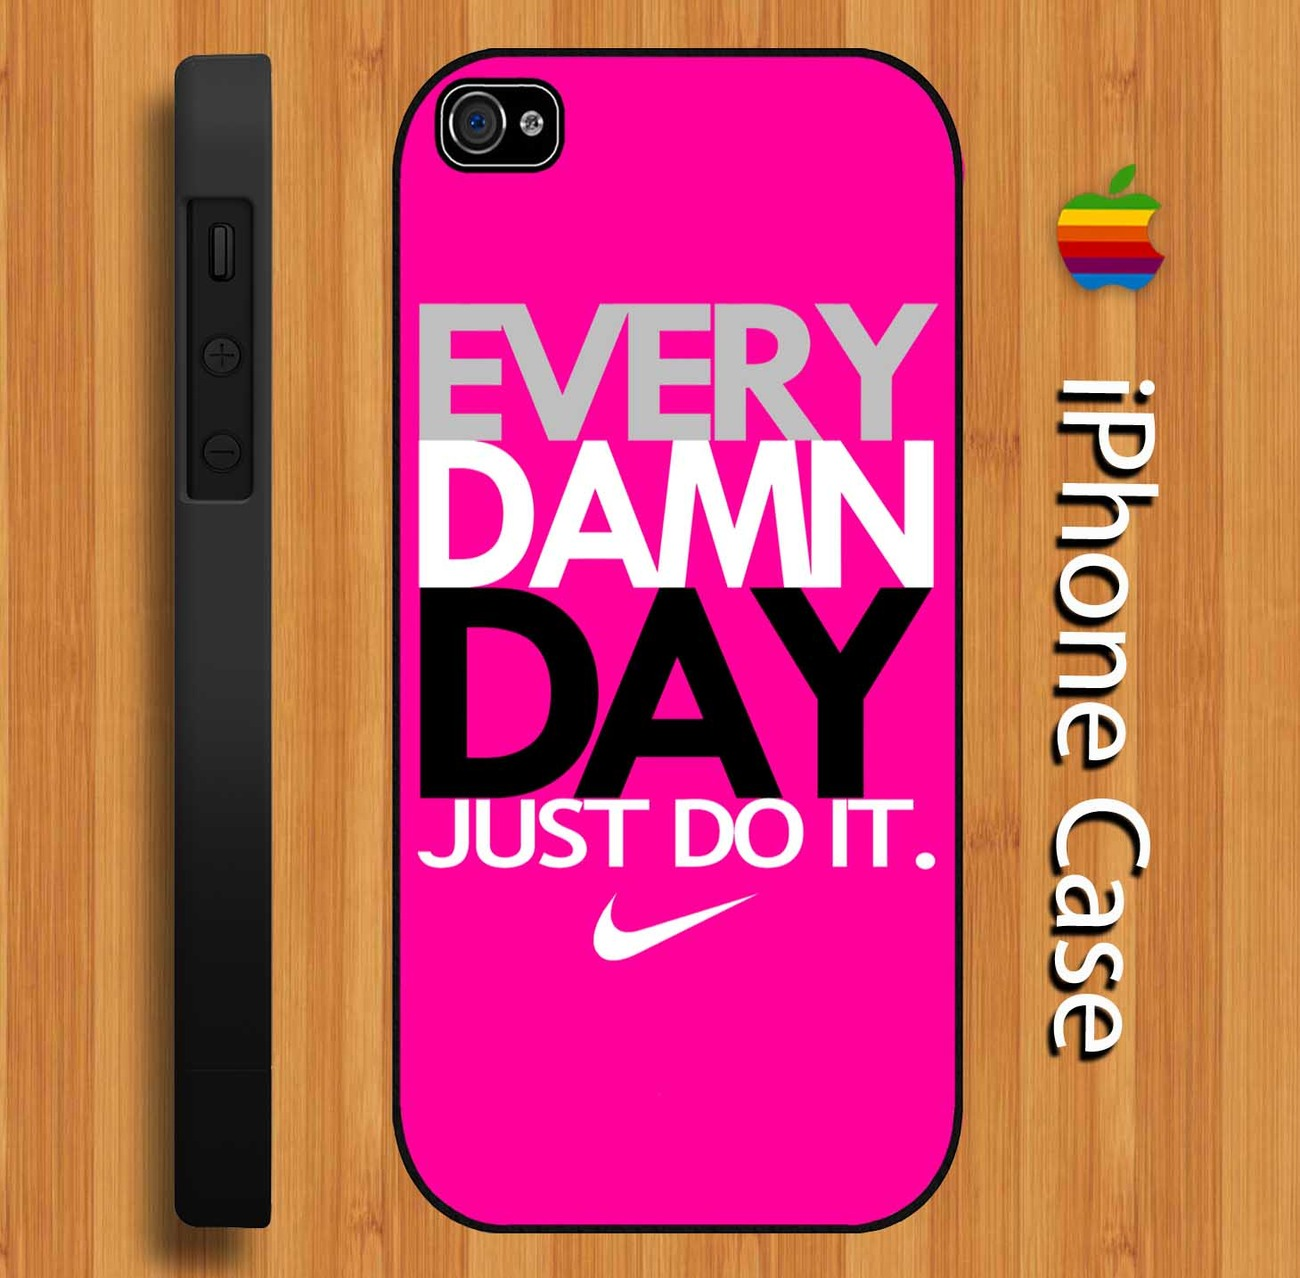 every damn day just do it nike wallpaper. Black Bedroom Furniture Sets. Home Design Ideas